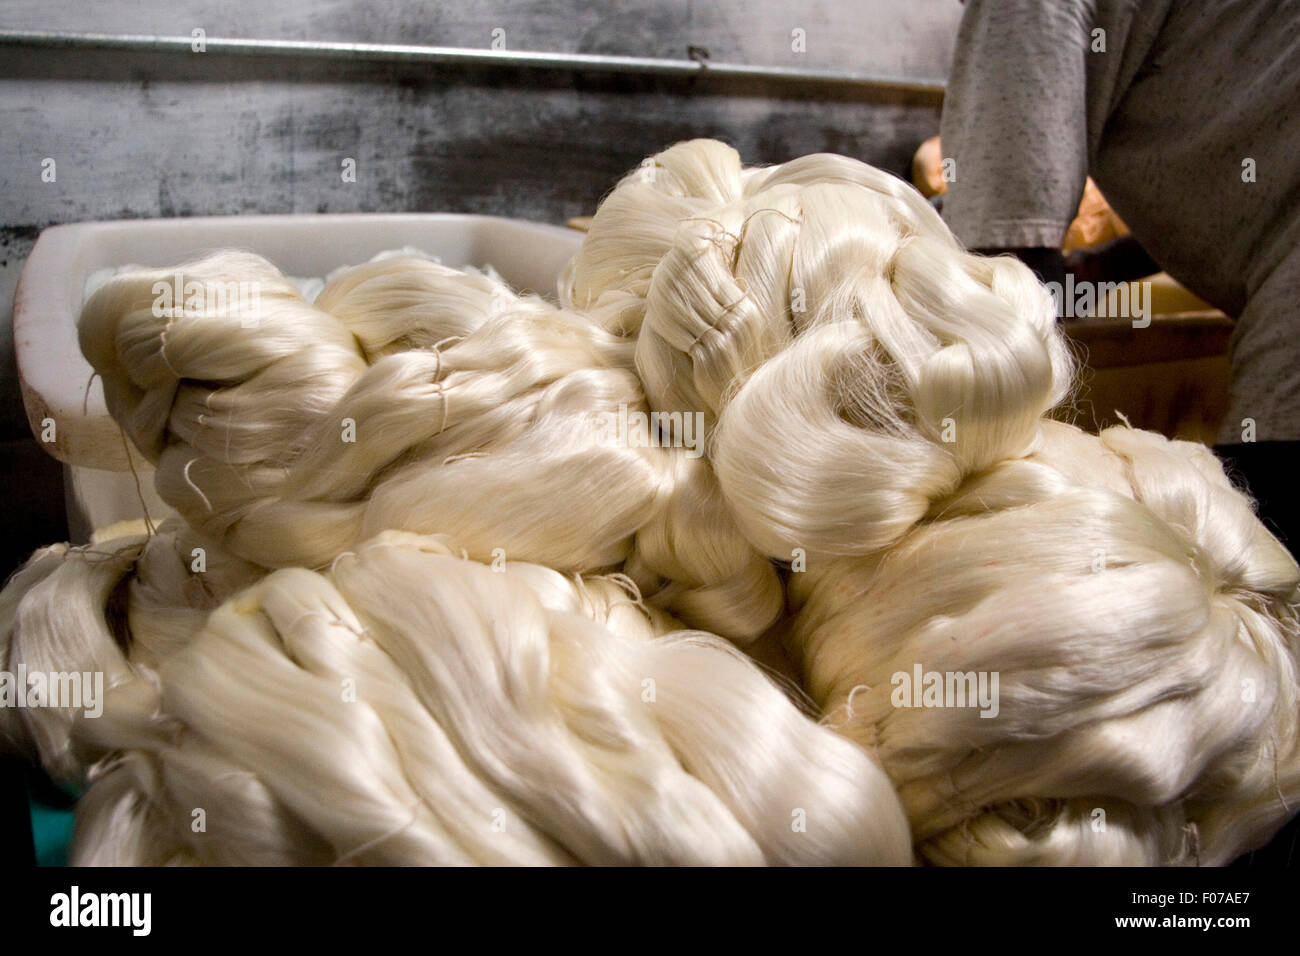 Raw silk is bundled and washed by hand at the state run for 18th century french cuisine